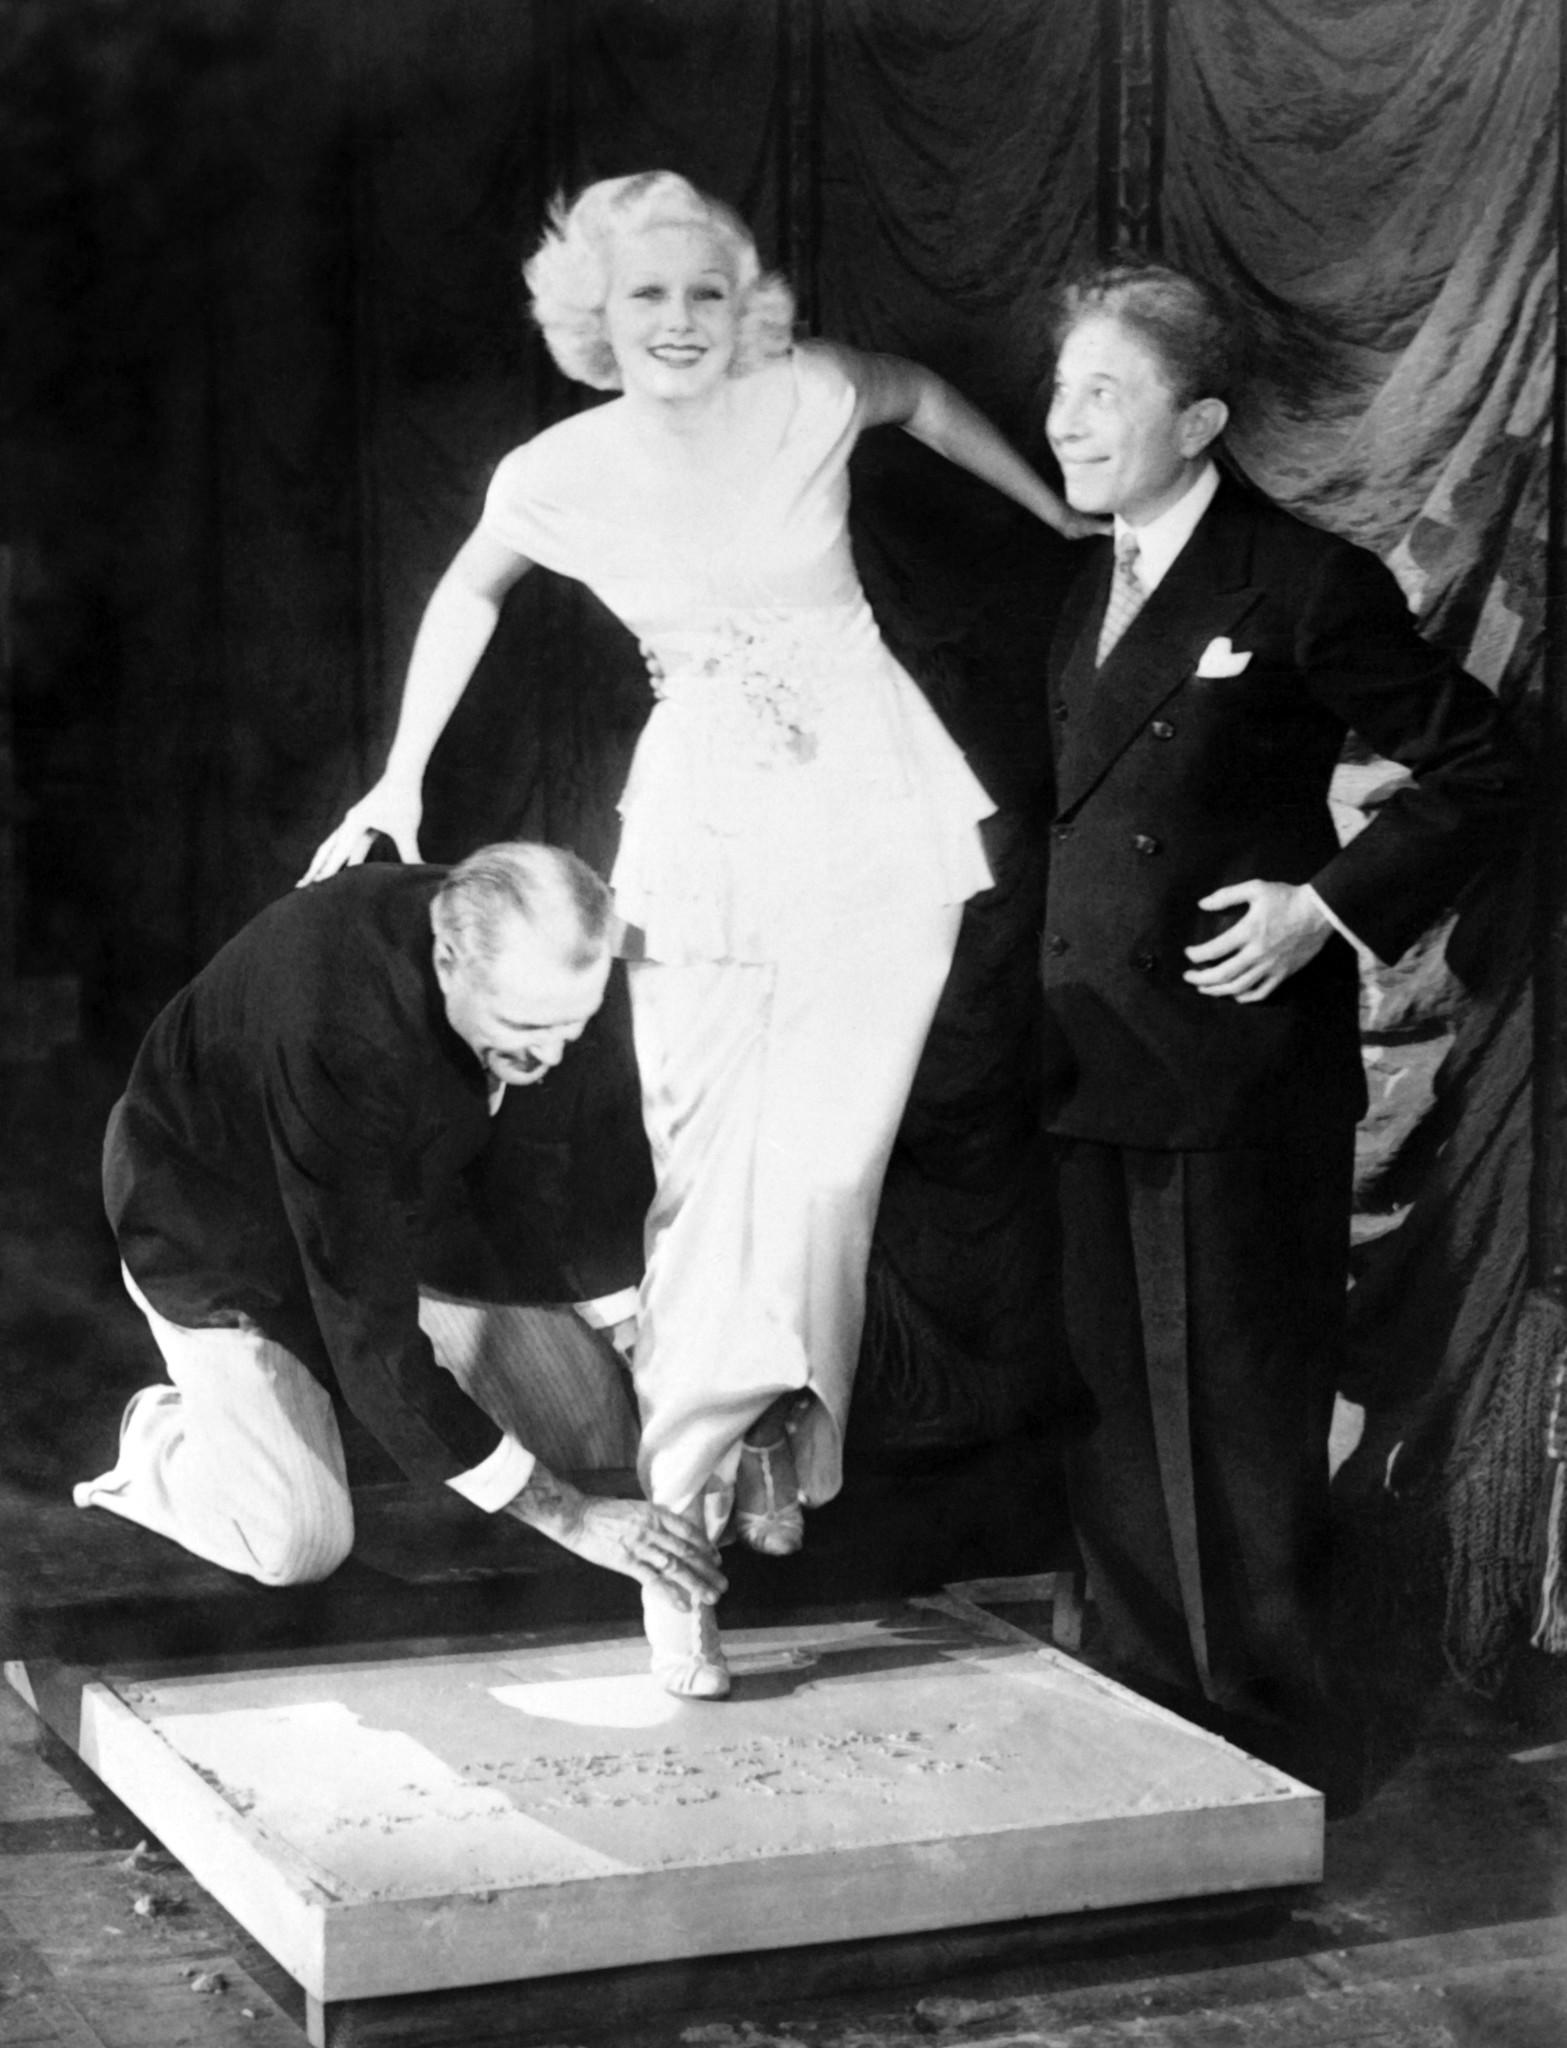 Sid Grauman, at right, takes Jean Harlow's footprint, at the Grauman's Chinese Theatre in Los Angeles, California, in 1933